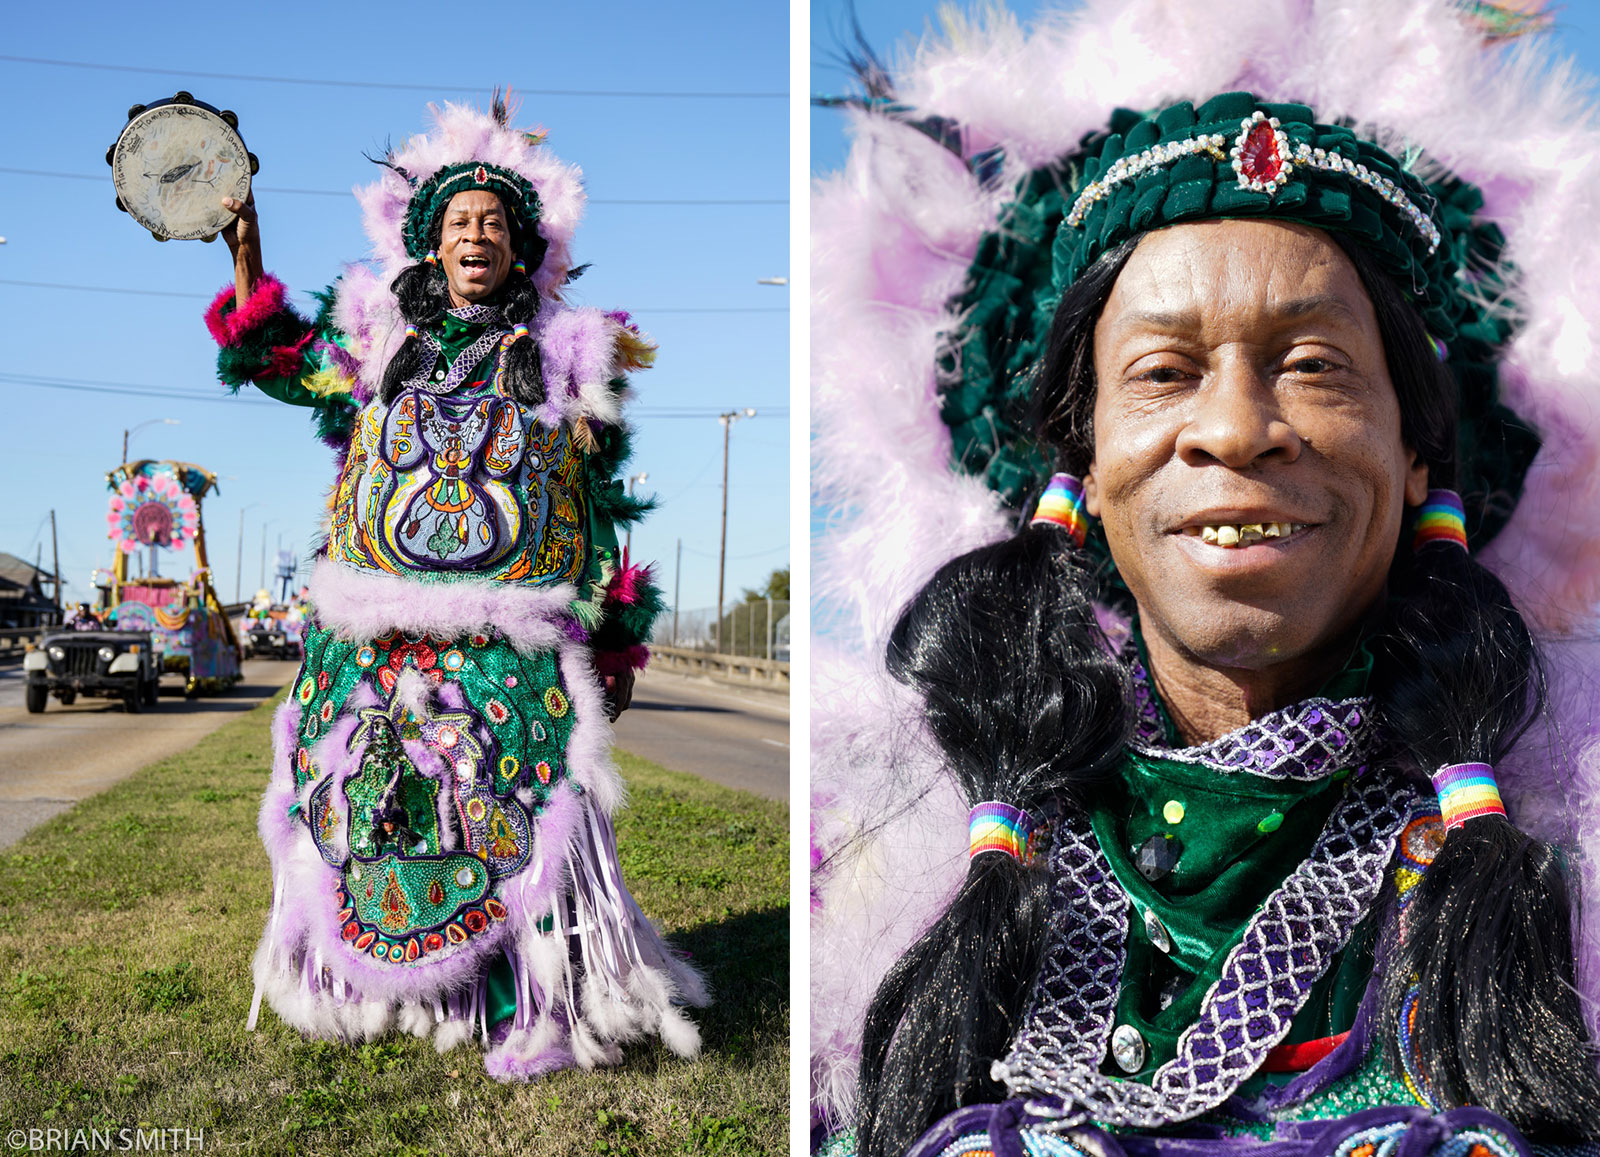 Big Chief Kevin Goodman of the Flaming Arrows photographed with Sony FE 24-70mm F2.8 GM lens